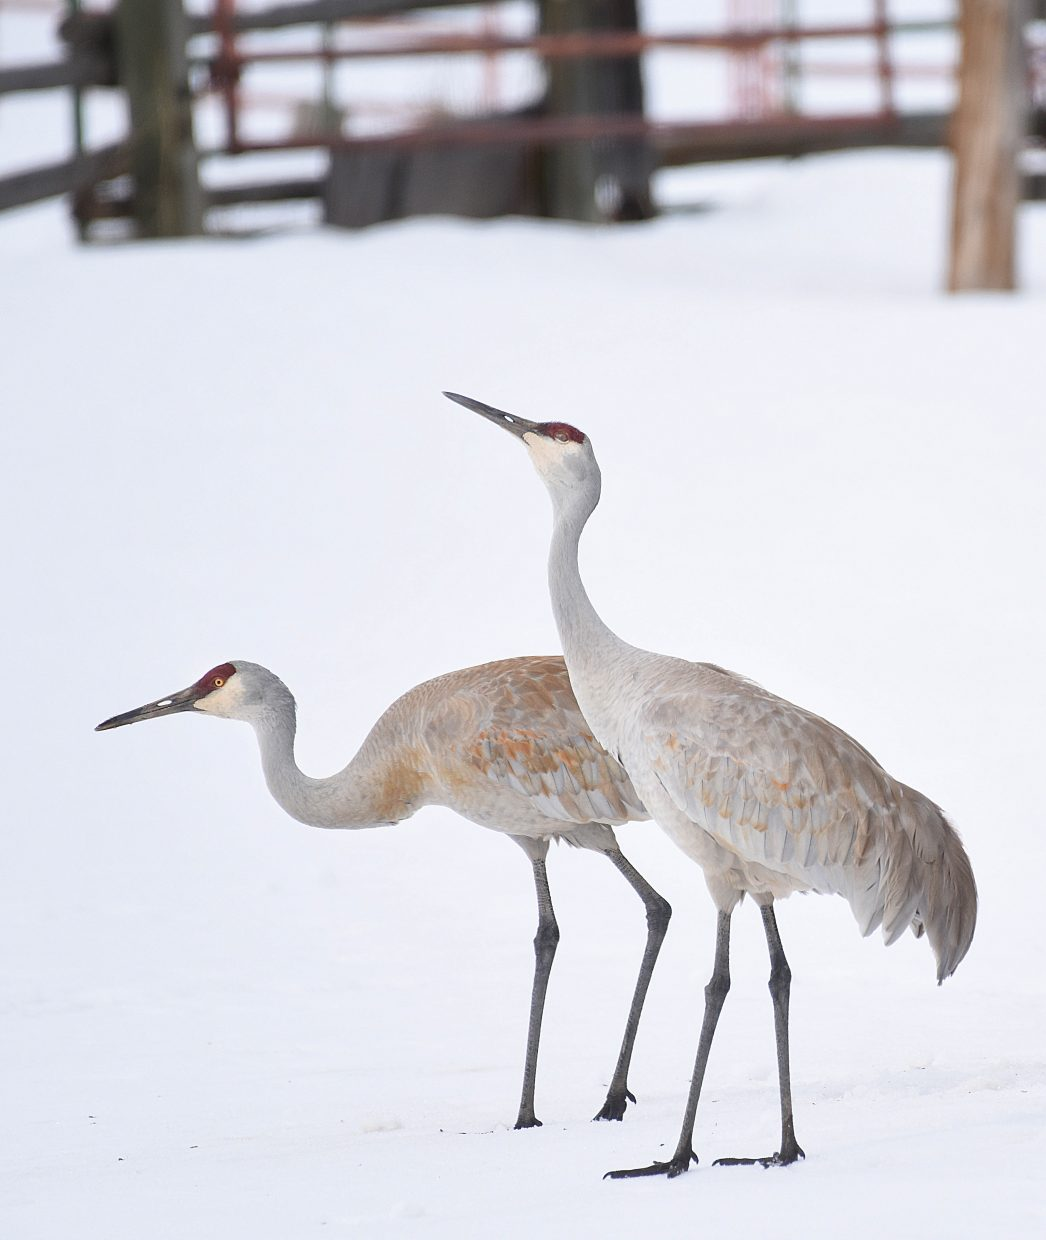 The cranes have returned to the Yampa Valley. These birds were spotted just west of Steamboat Springs, and while they didn't seem to enjoy the cold wind blowing across the snow, the birds' return is a sure sign that spring has arrived.